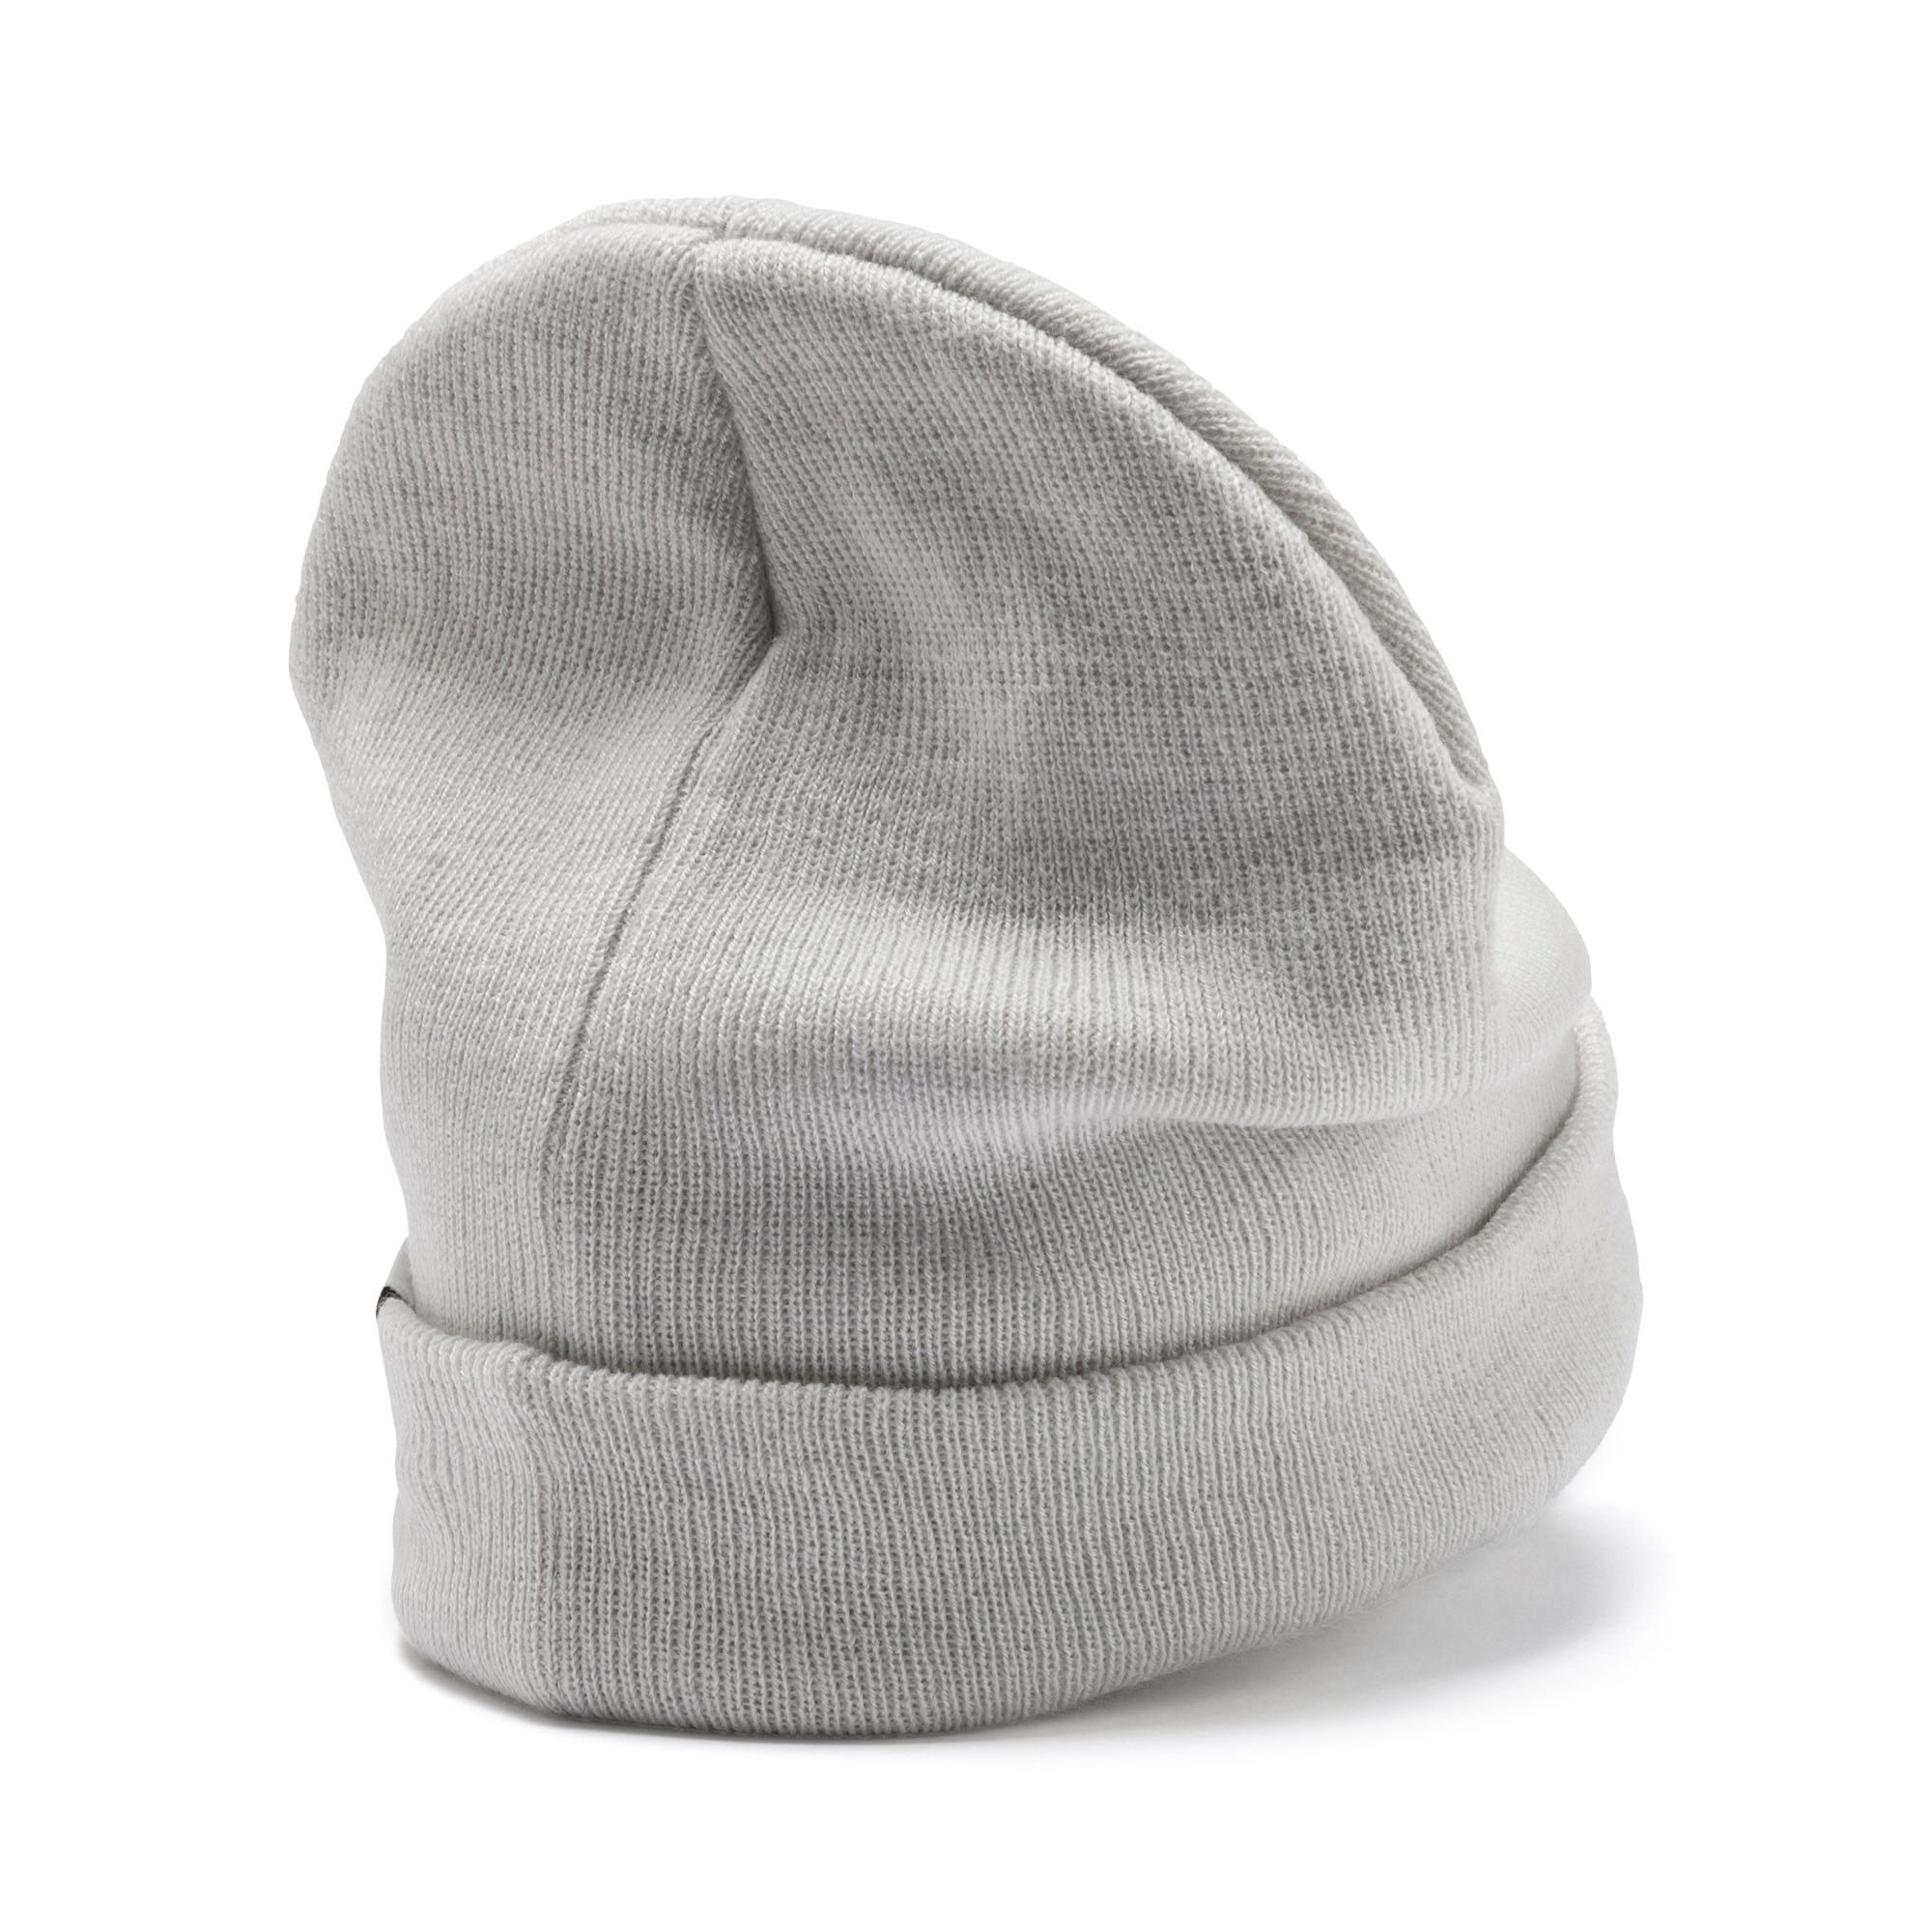 Thumbnail 2 of PUMA x SELENA GOMEZ Women's Beanie, Glacier Gray, medium-IND